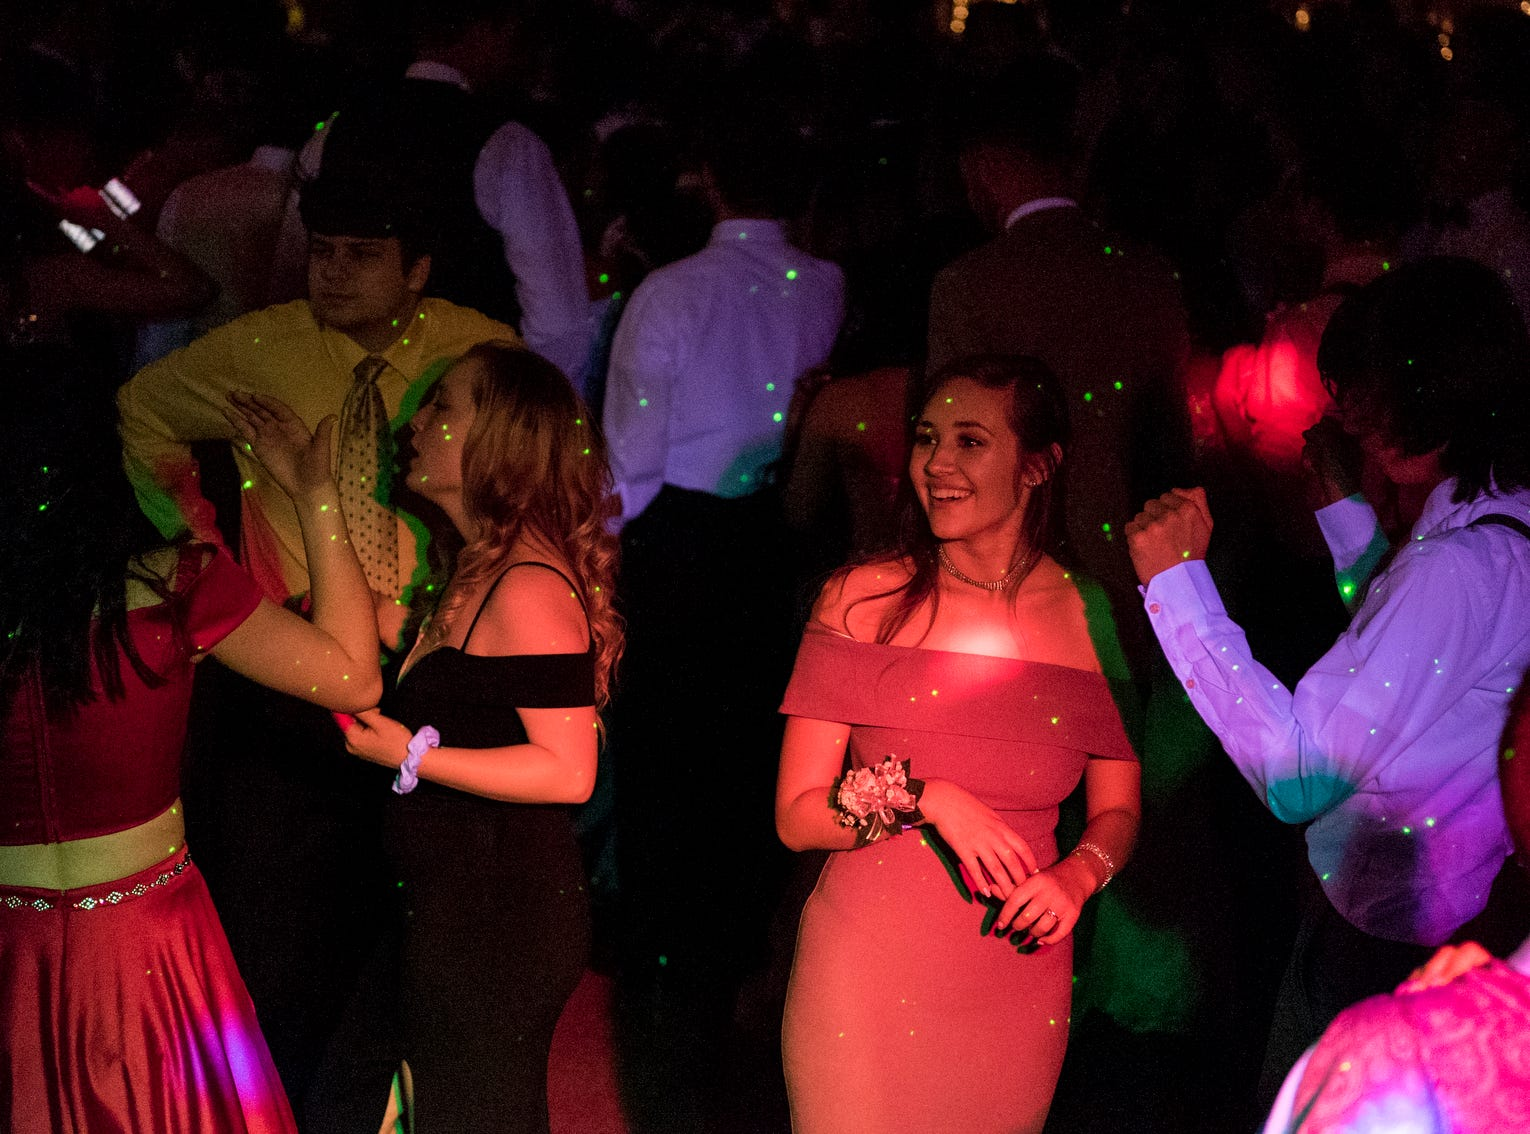 """Jasmine Richardson, center, smiles as she dances with her date Mason Bradley, right, and their friends during Central High School's """"Uptown Night"""" themed prom held at the Vanderburgh 4-H Center auditorium in Evansville, Ind., Saturday, April 27, 2019."""